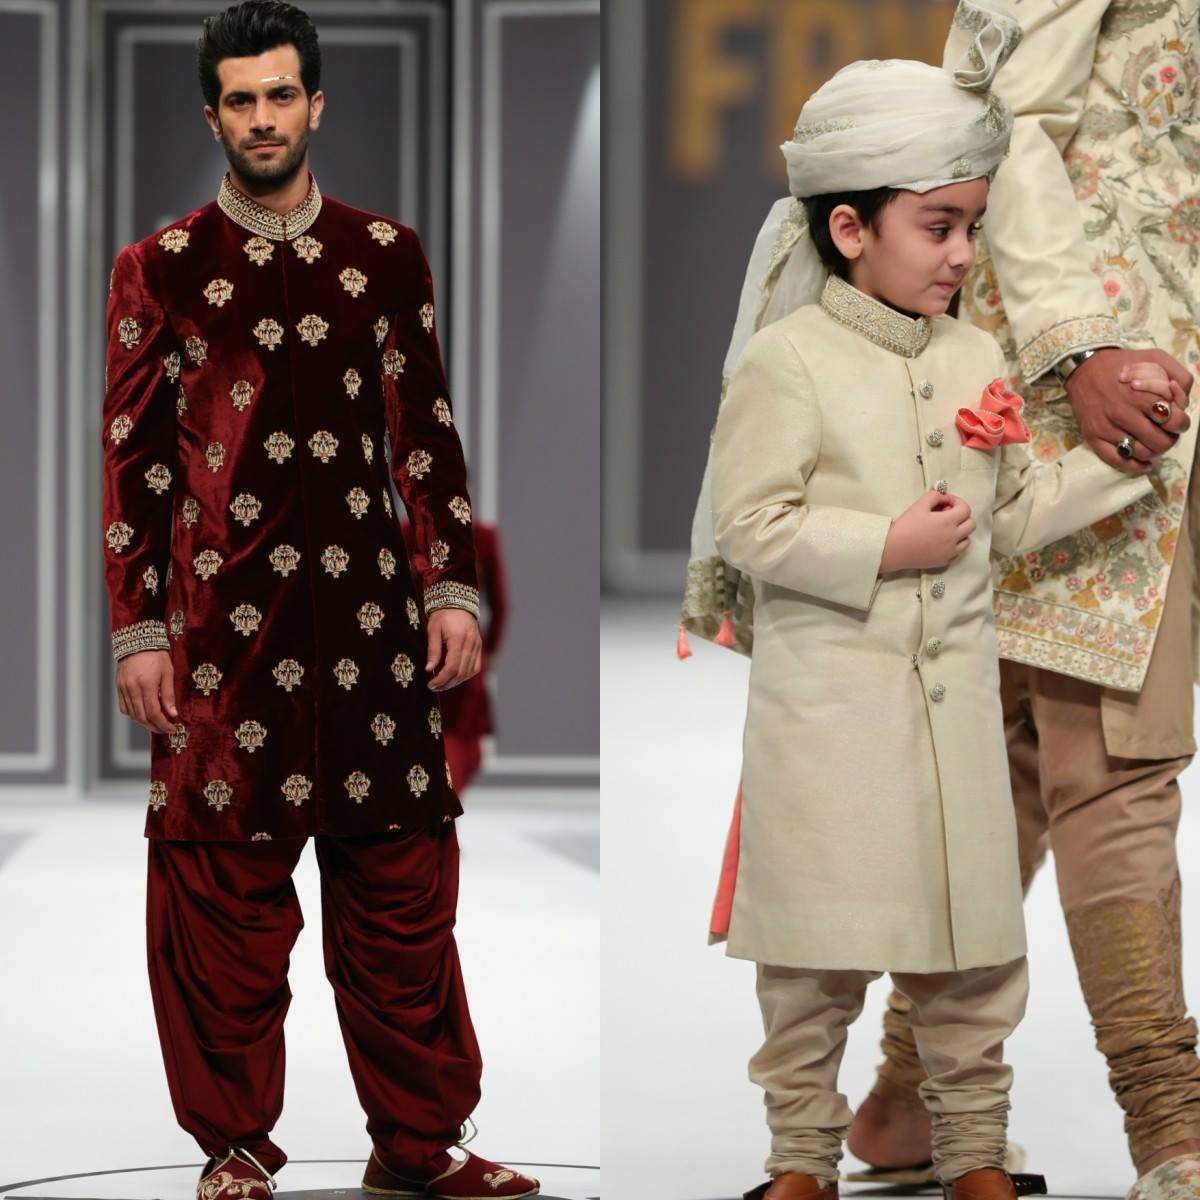 Nauman Arfeen's menswear, like always, was retail friendly and easy on the eyes